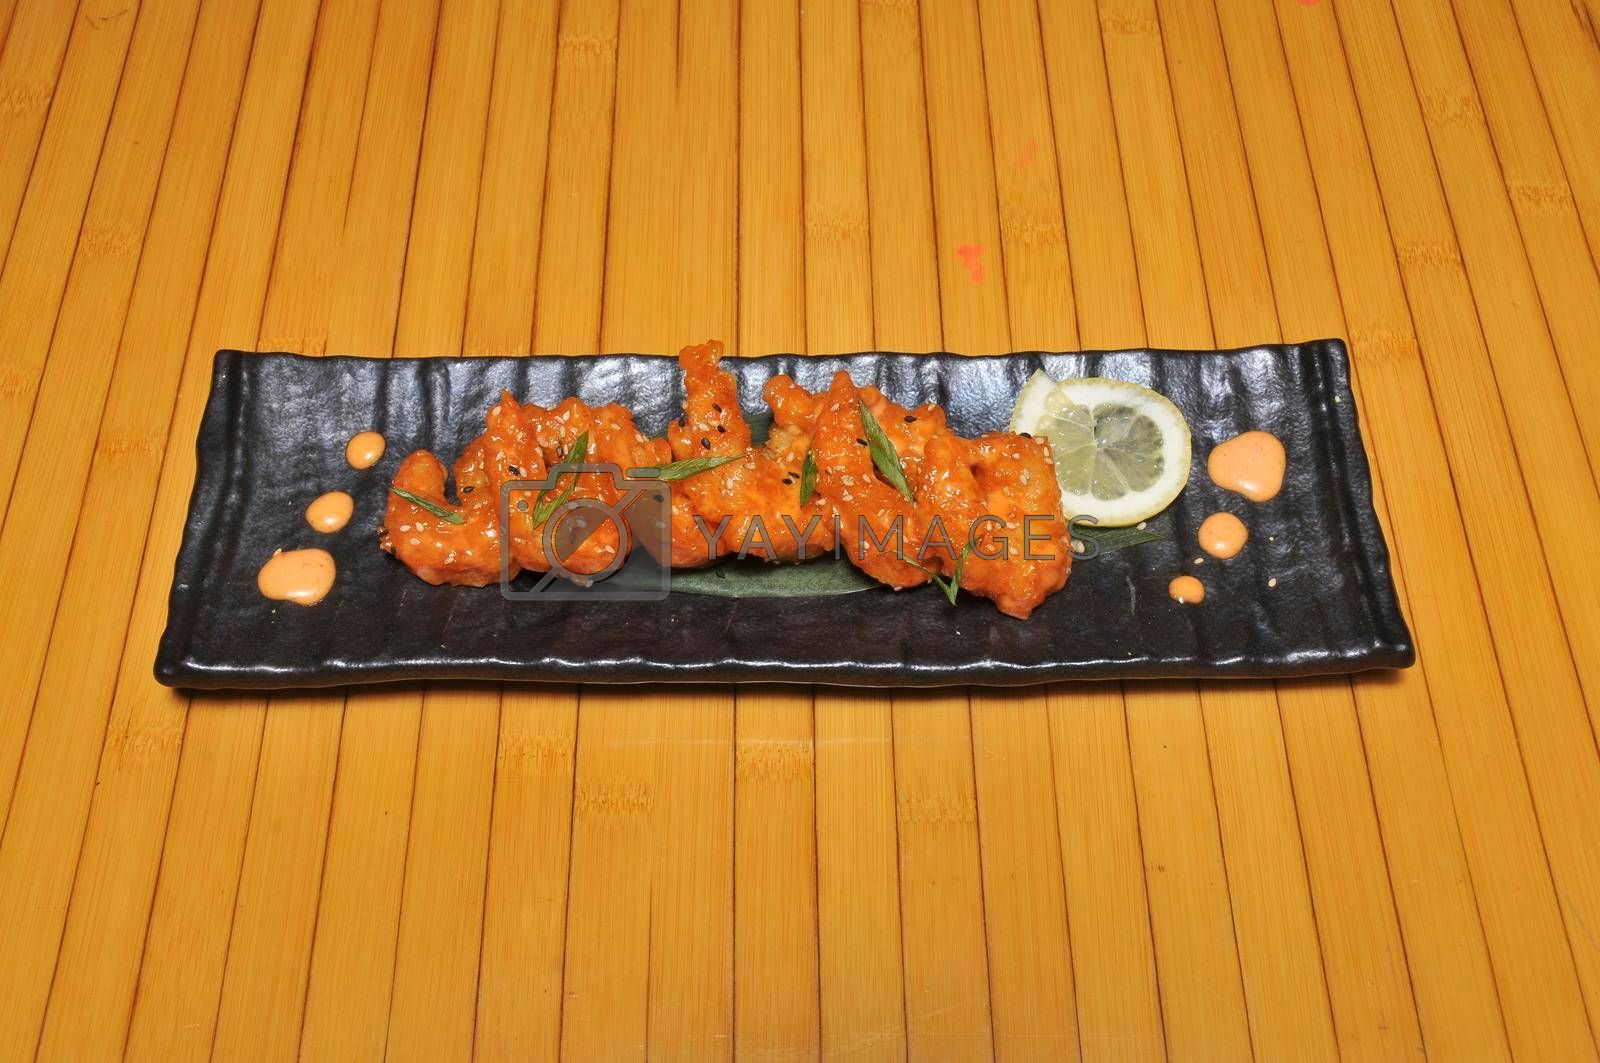 Delicious Japanese food known as volcano shrimp